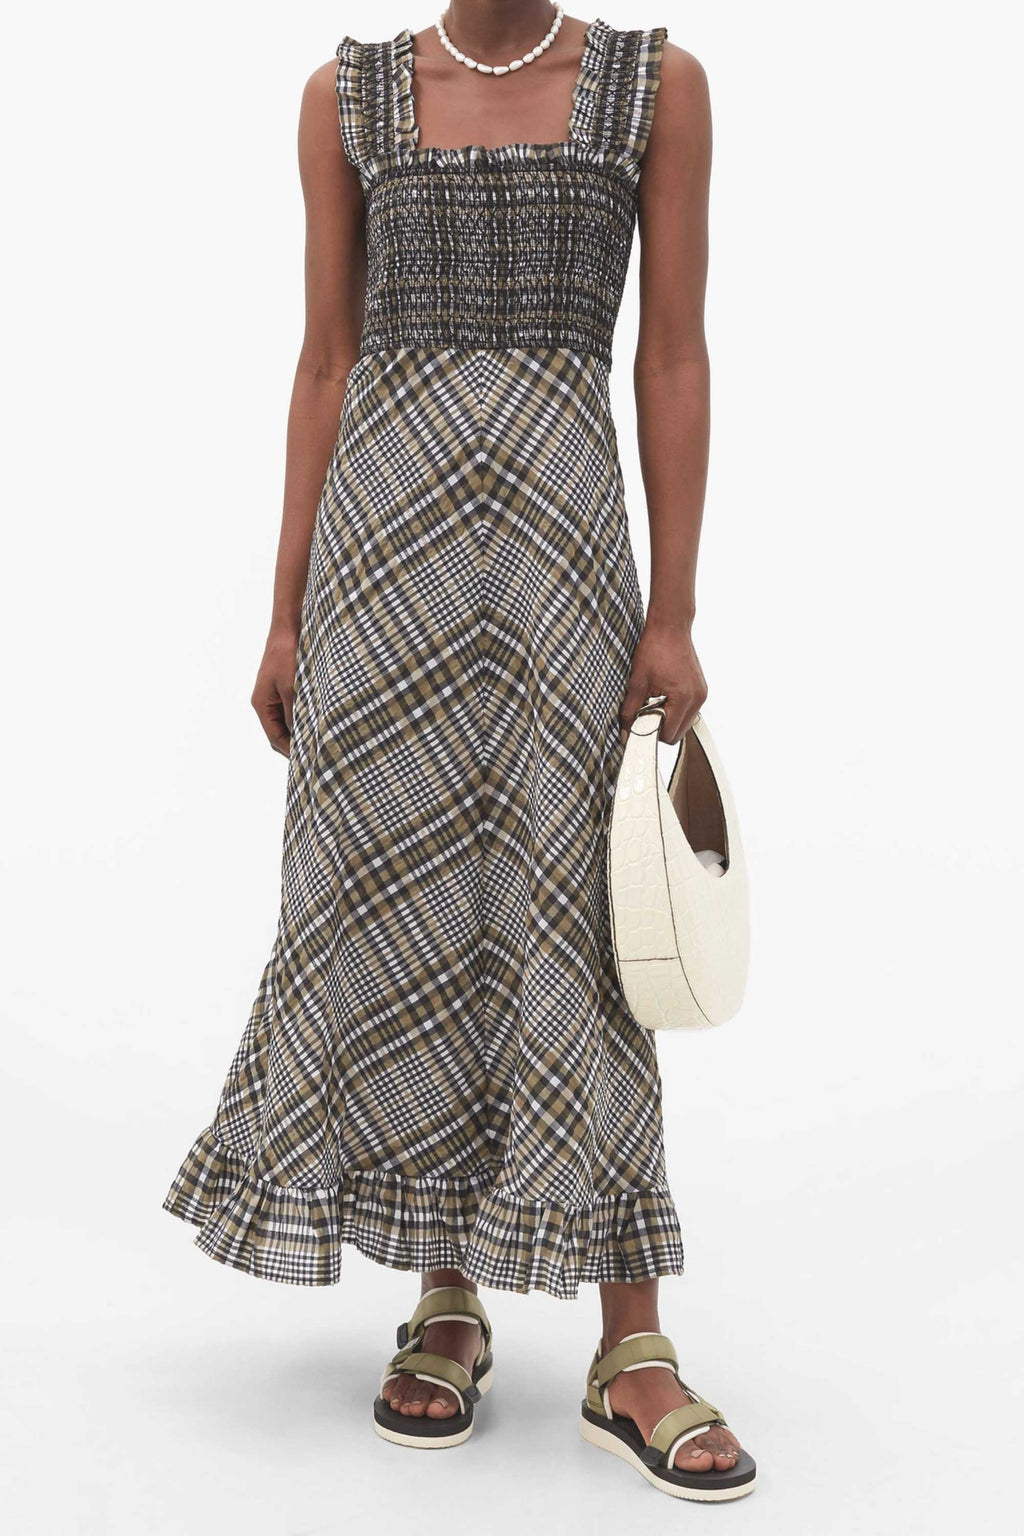 SEERSUCKER CHECK MAXI DRESS - KALAMATA PLAID